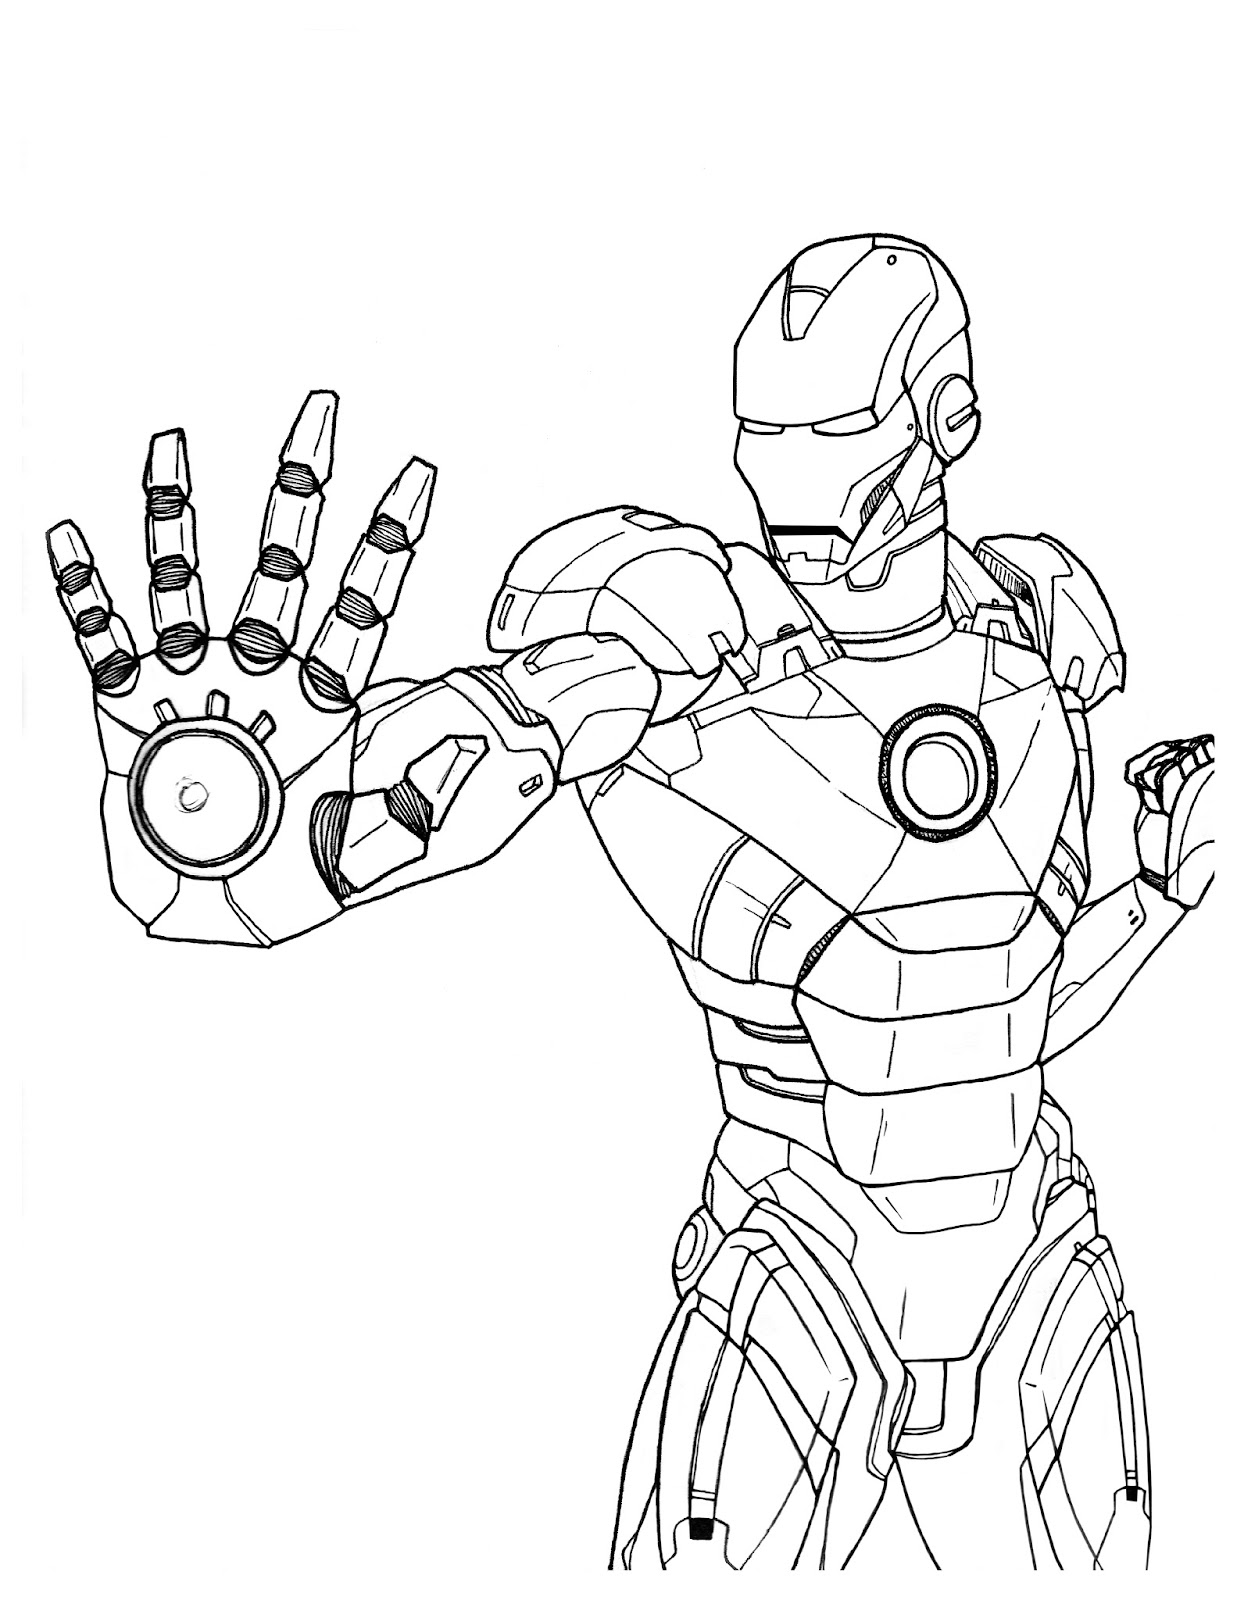 iron man outline drawing iron man outline drawing at getdrawings free download man drawing outline iron